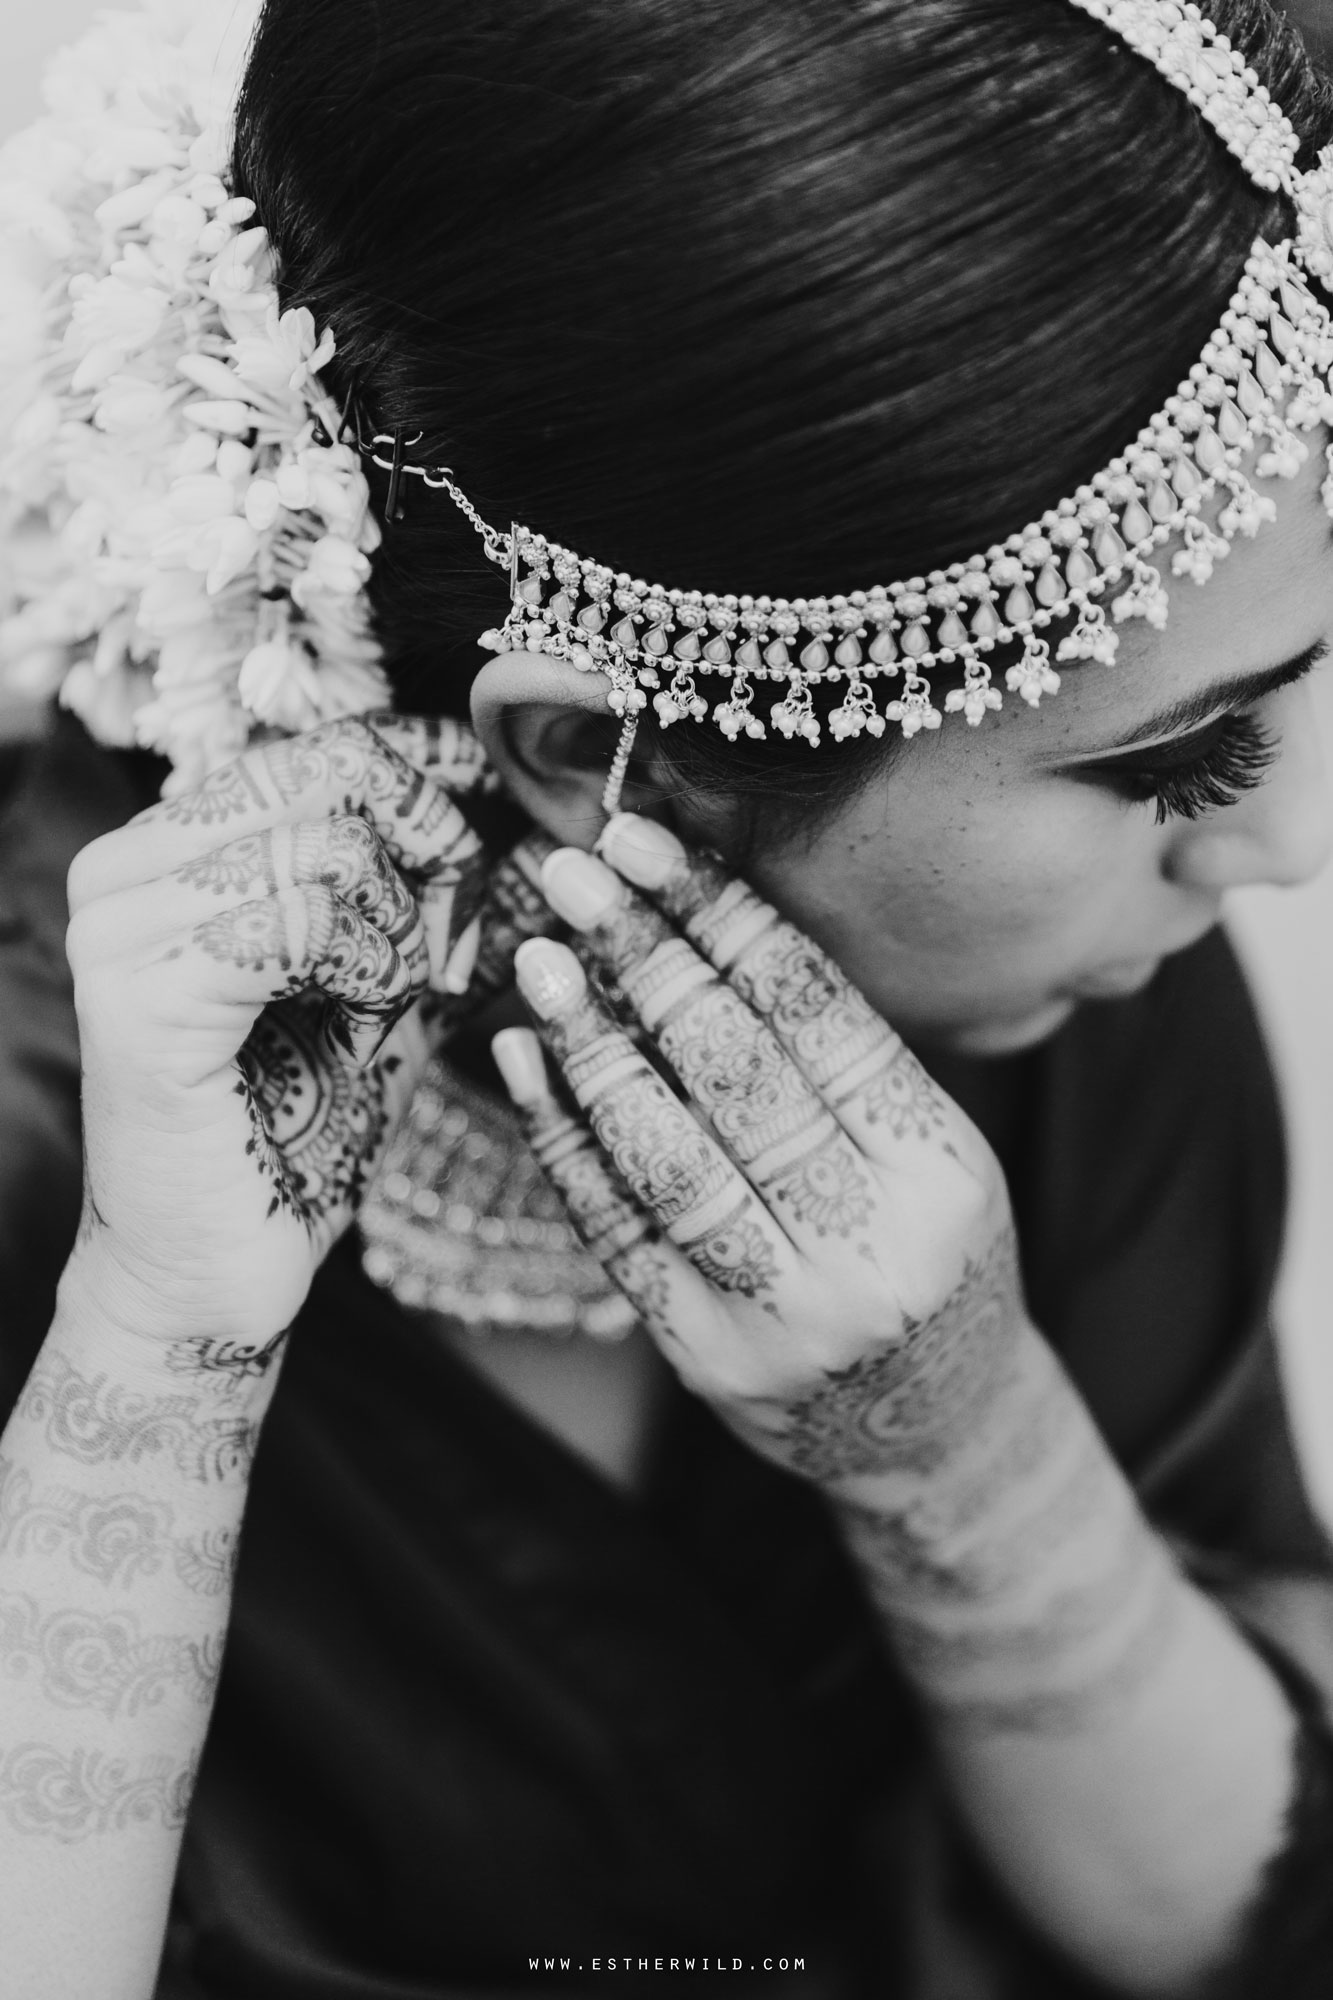 Northbrook_Park_Farnham_Surrey_London_Wedding_Hindu_Fusion_Esther_Wild_Photographer_IMG_2987-2.jpg